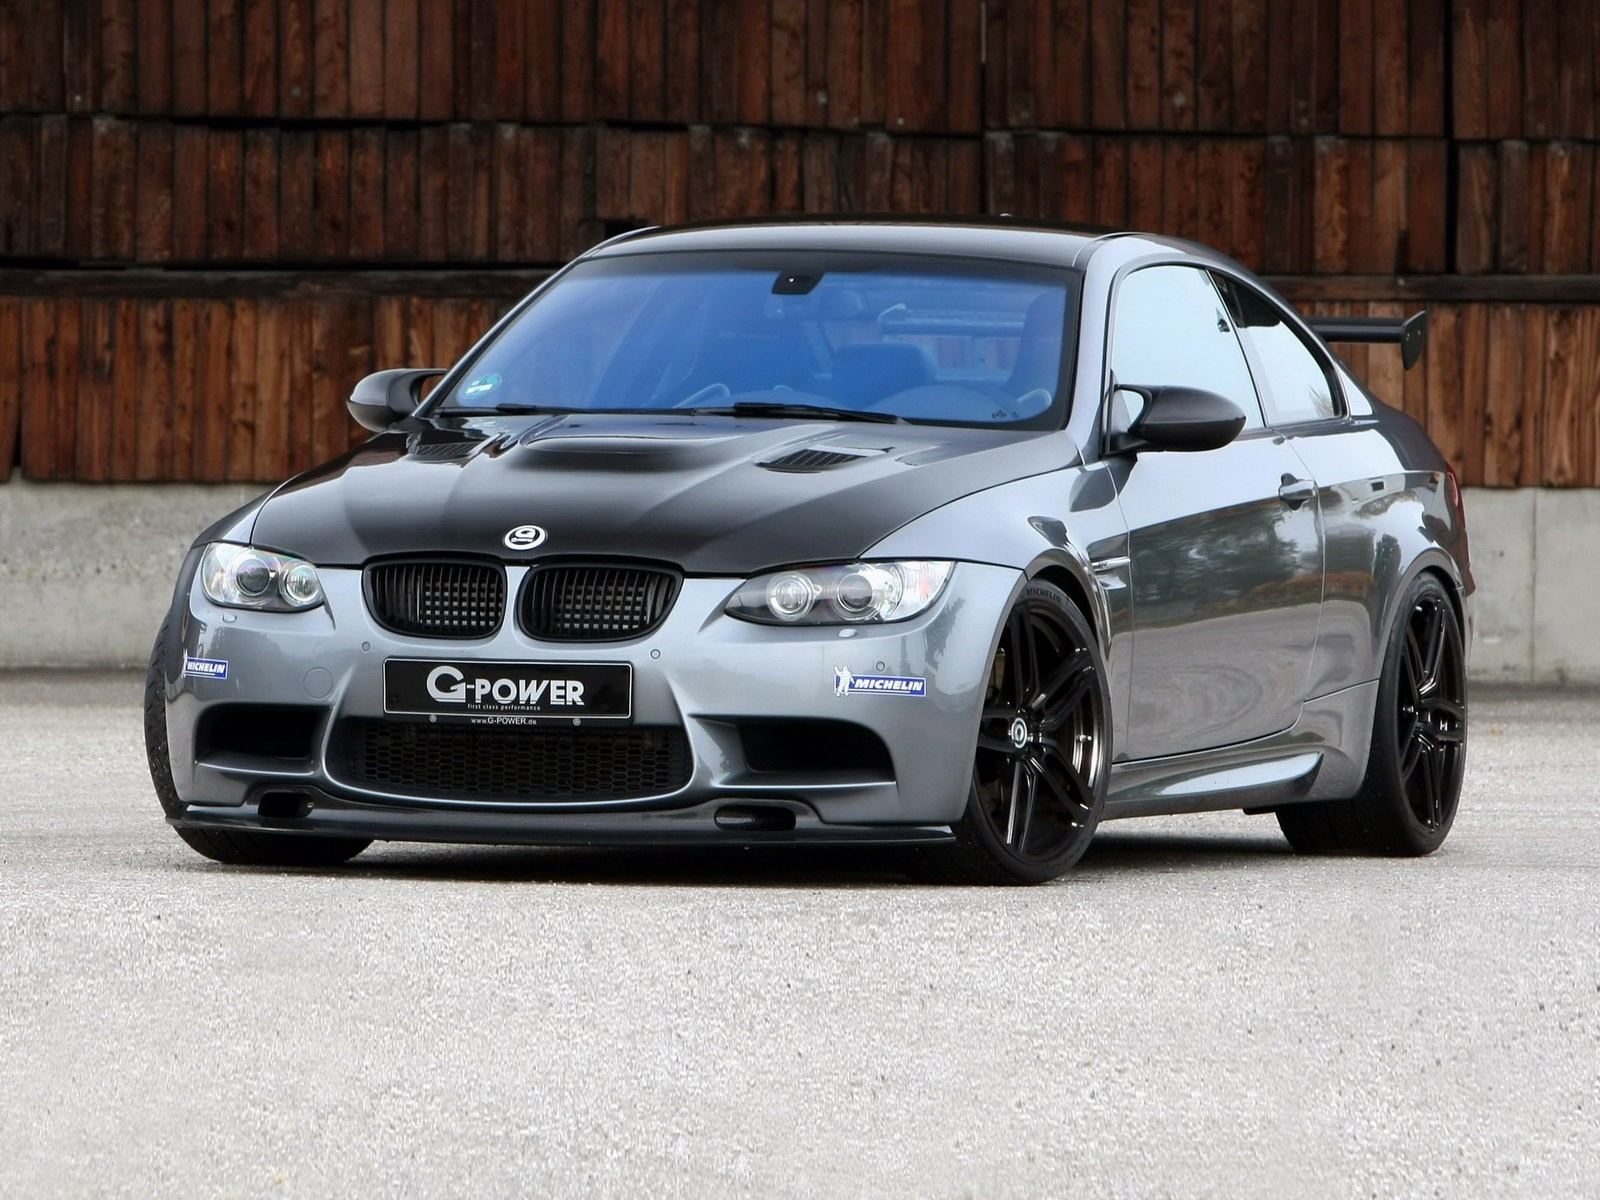 2015 G-power - Bmw M3 RS E9X E92